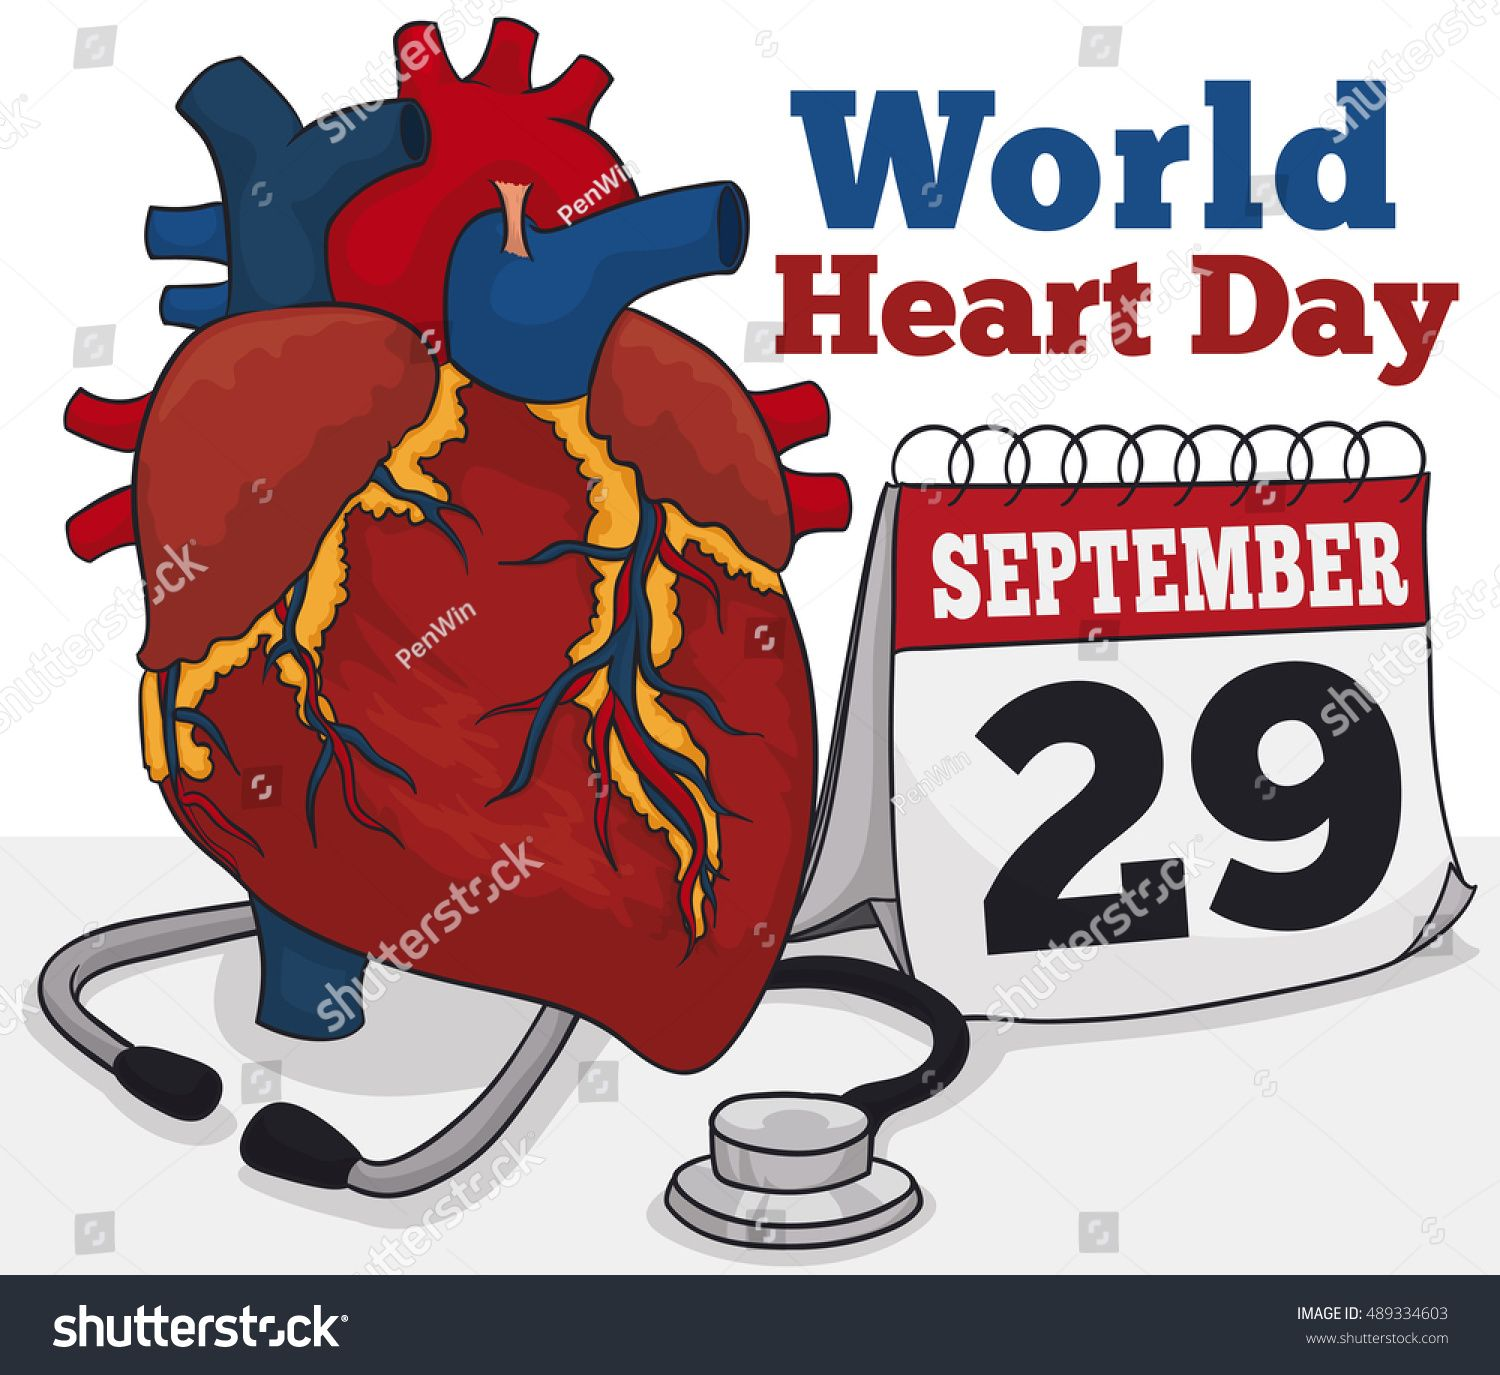 Poster With Realistic Cartoon Poster With A Stethoscope A Loose Leaf Calendar With Reminder Date And Human World Heart Day Realistic Cartoons Cartoon Posters